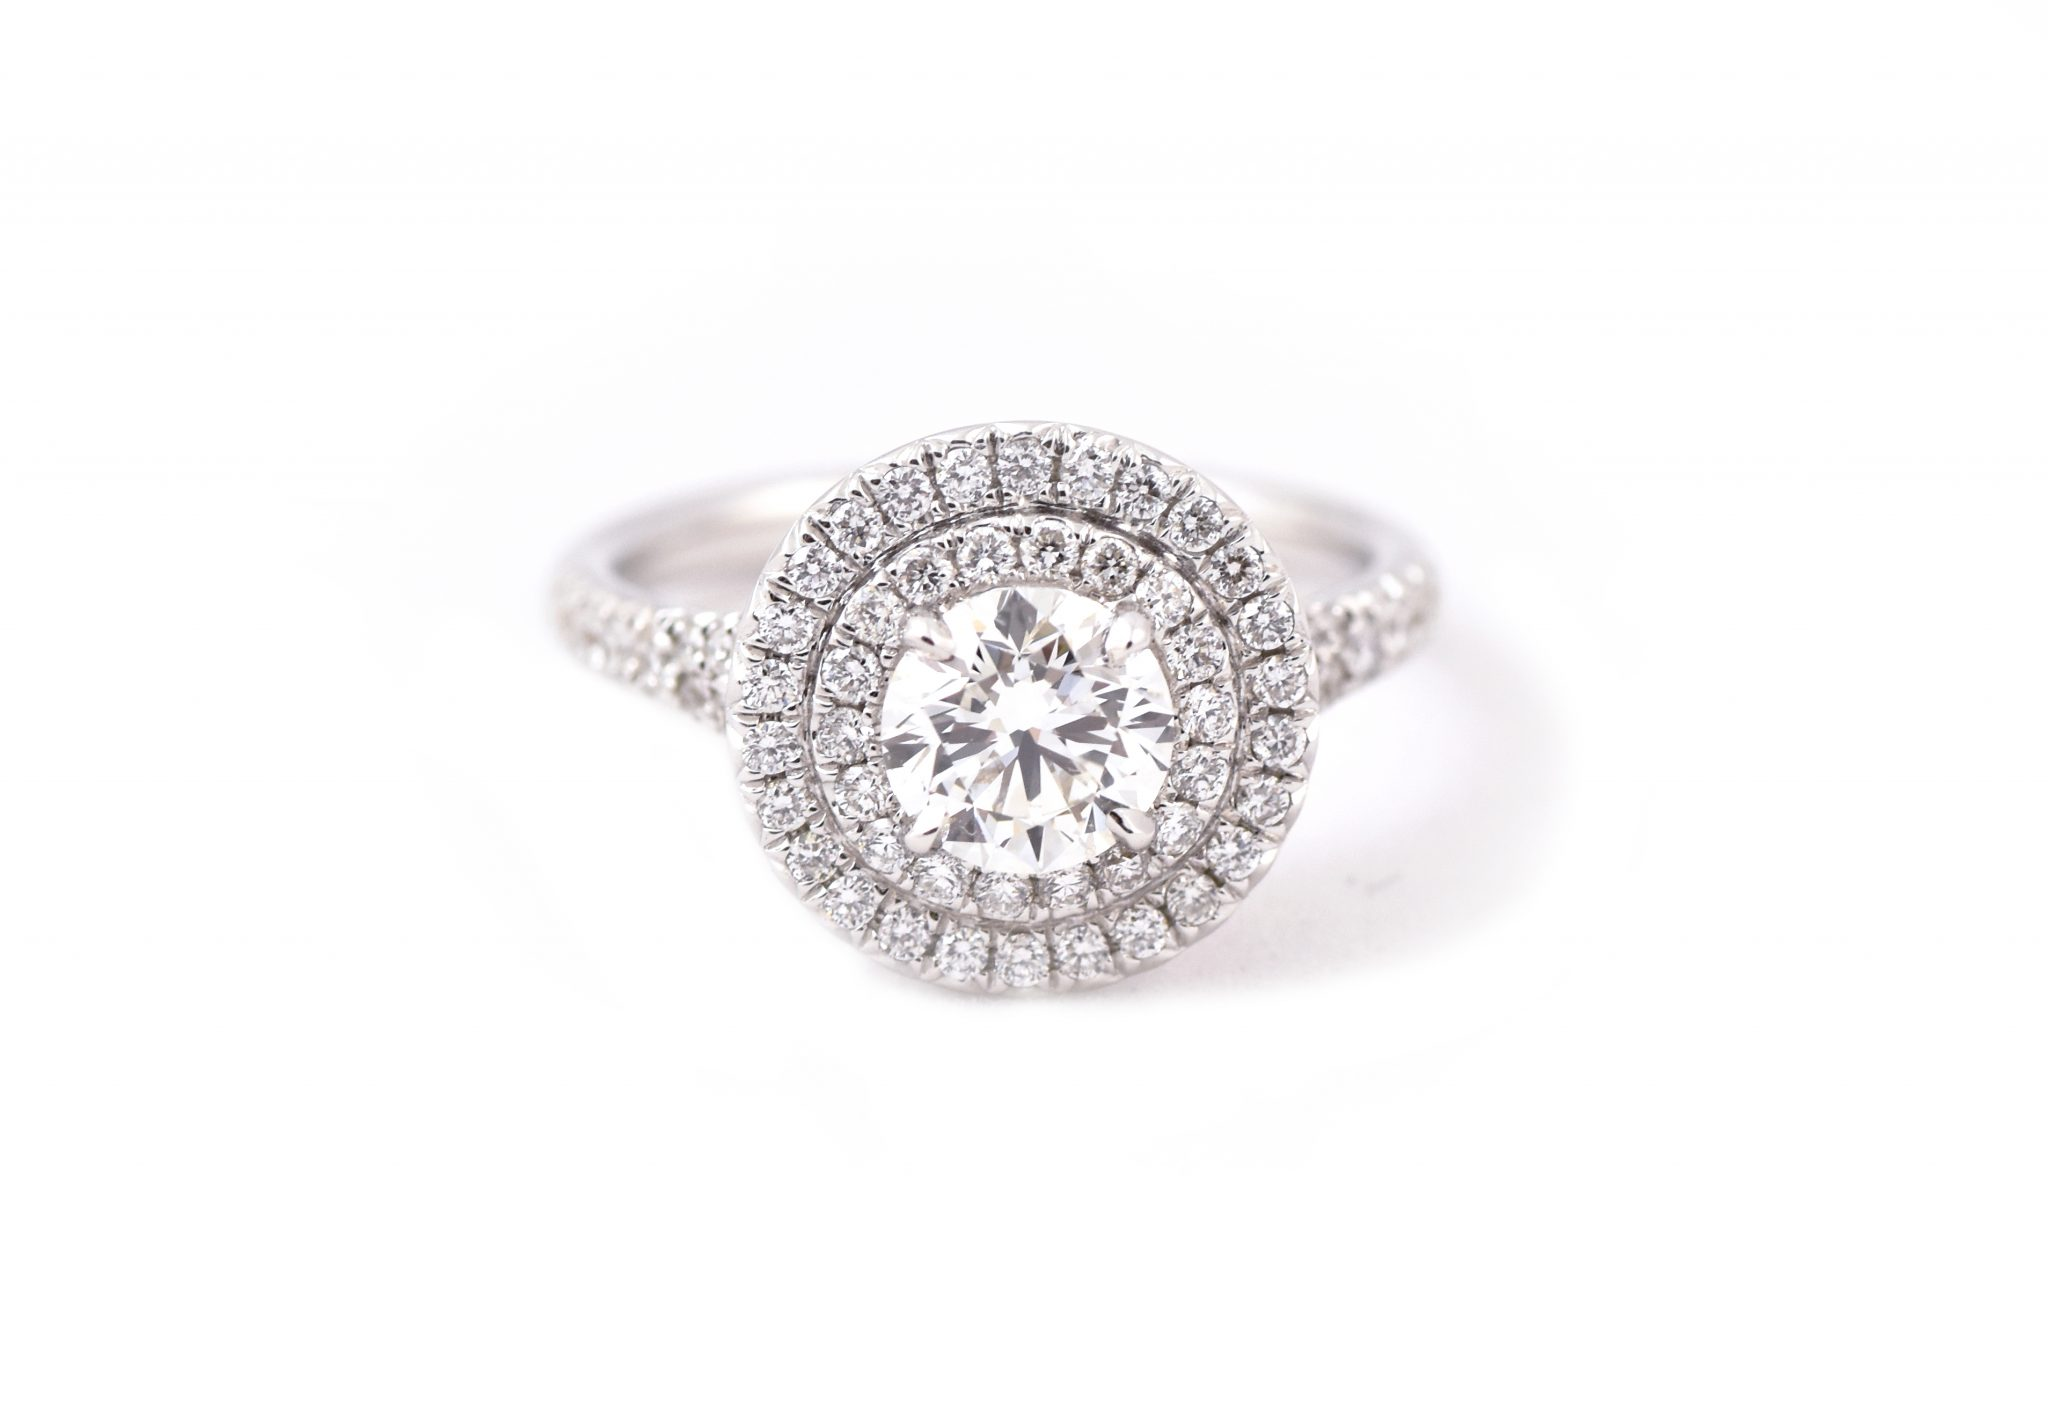 Double Halo Diamond Engagement Ring | B21145